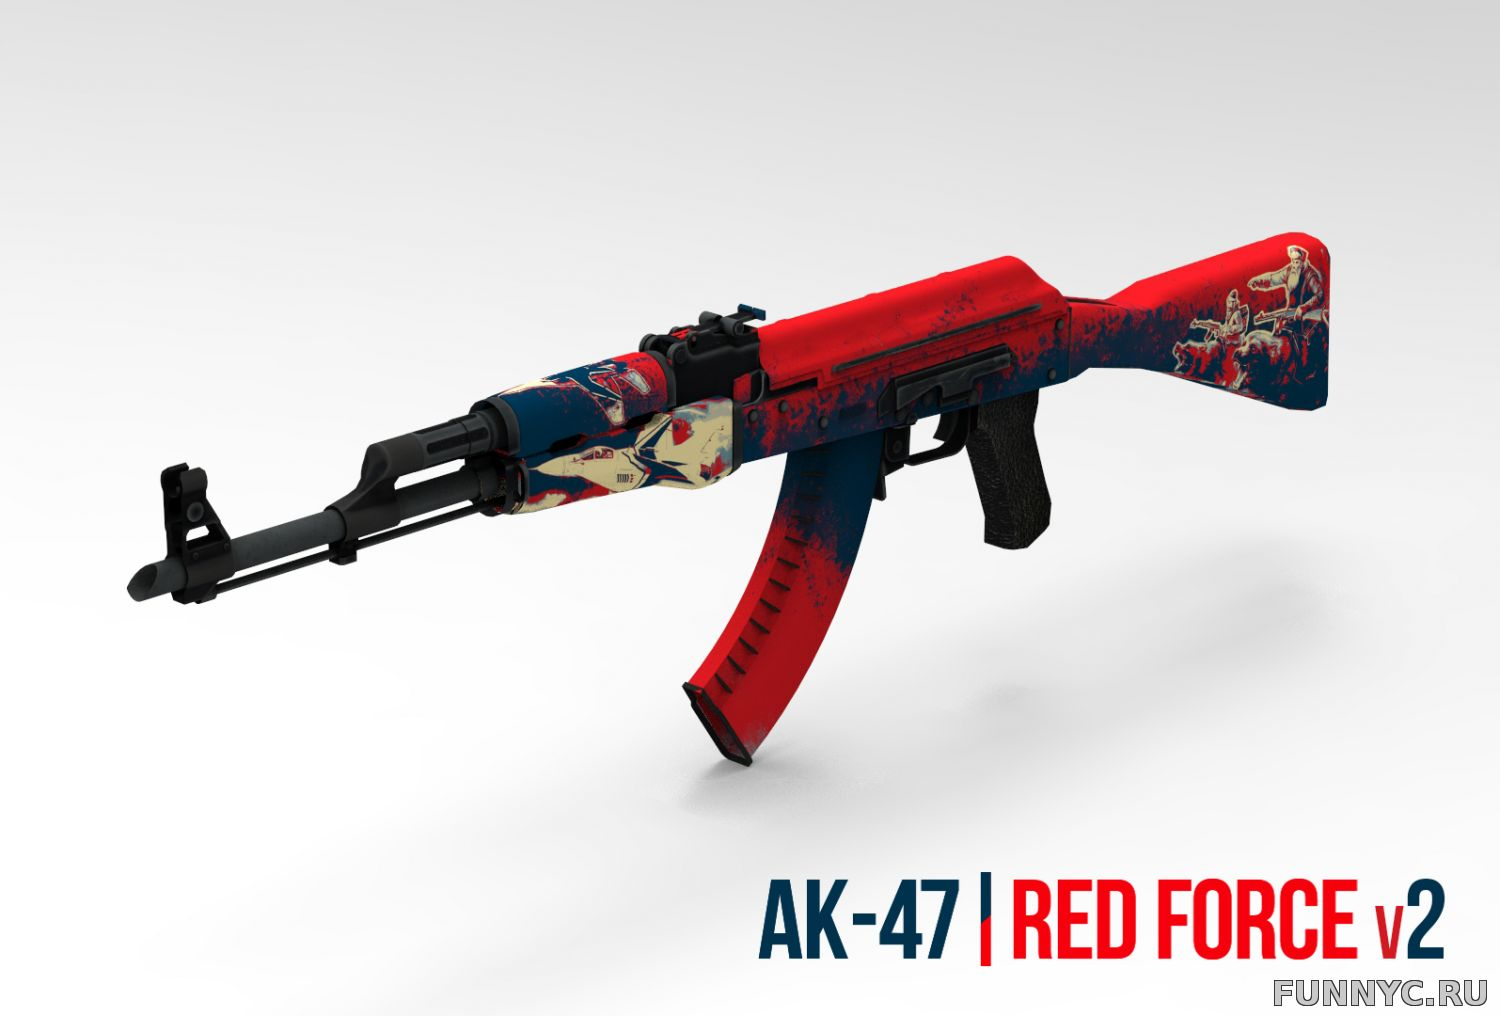 AK-47 RED FORCE V2